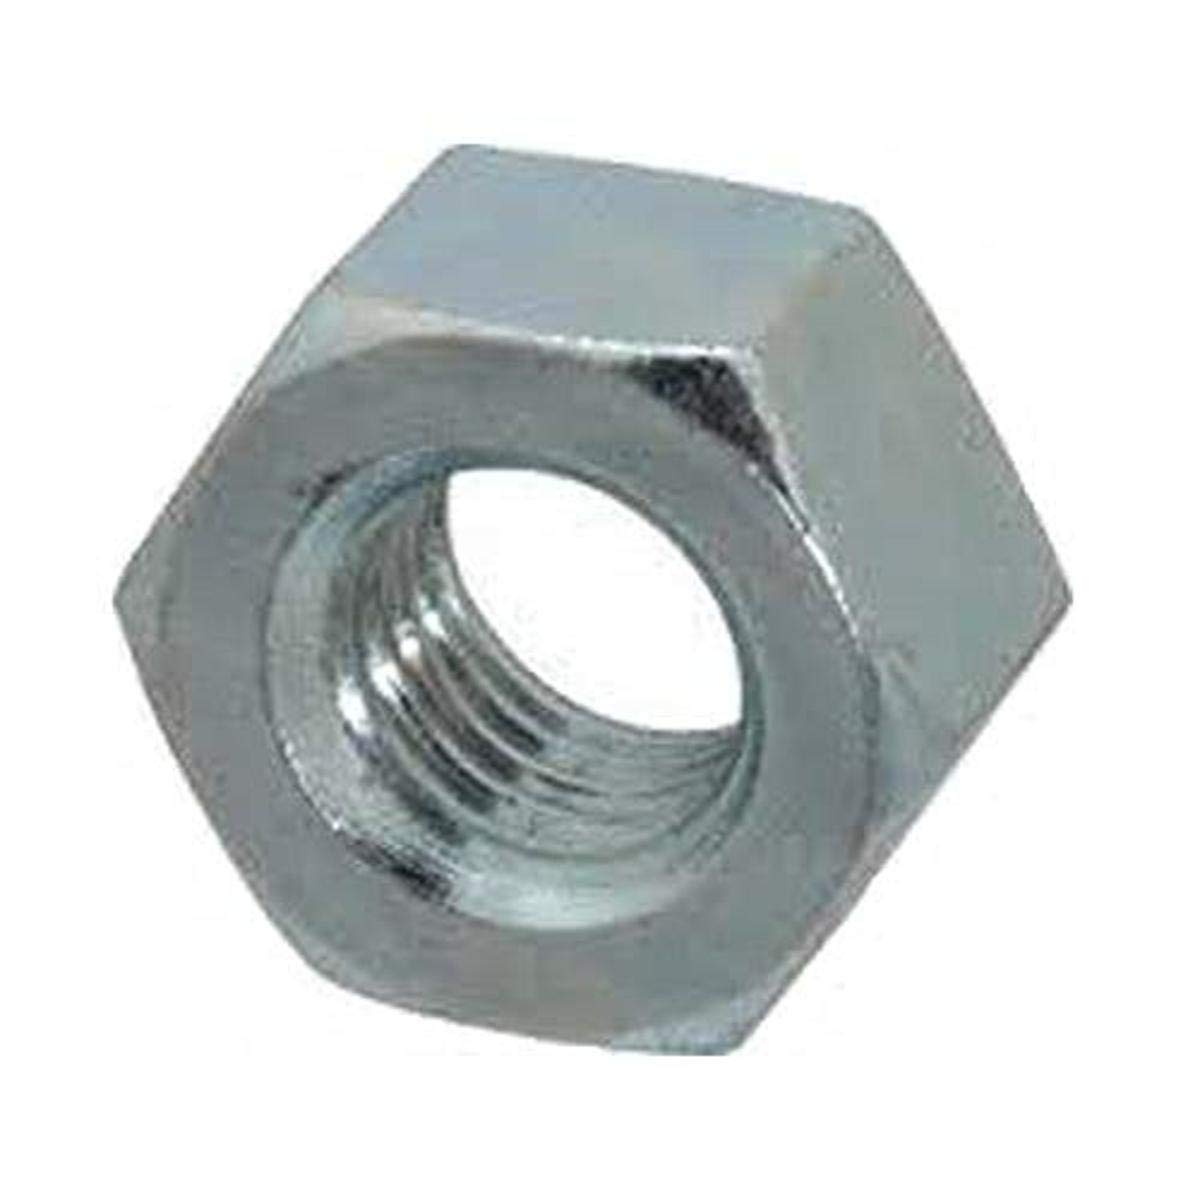 2-56 Thread Size Small Parts FSC2HNSZ Low-Strength Steel Hex Nut Fastcom Supply 2-56 Thread Size Pack of 100 Pack of 100 Zinc Plated